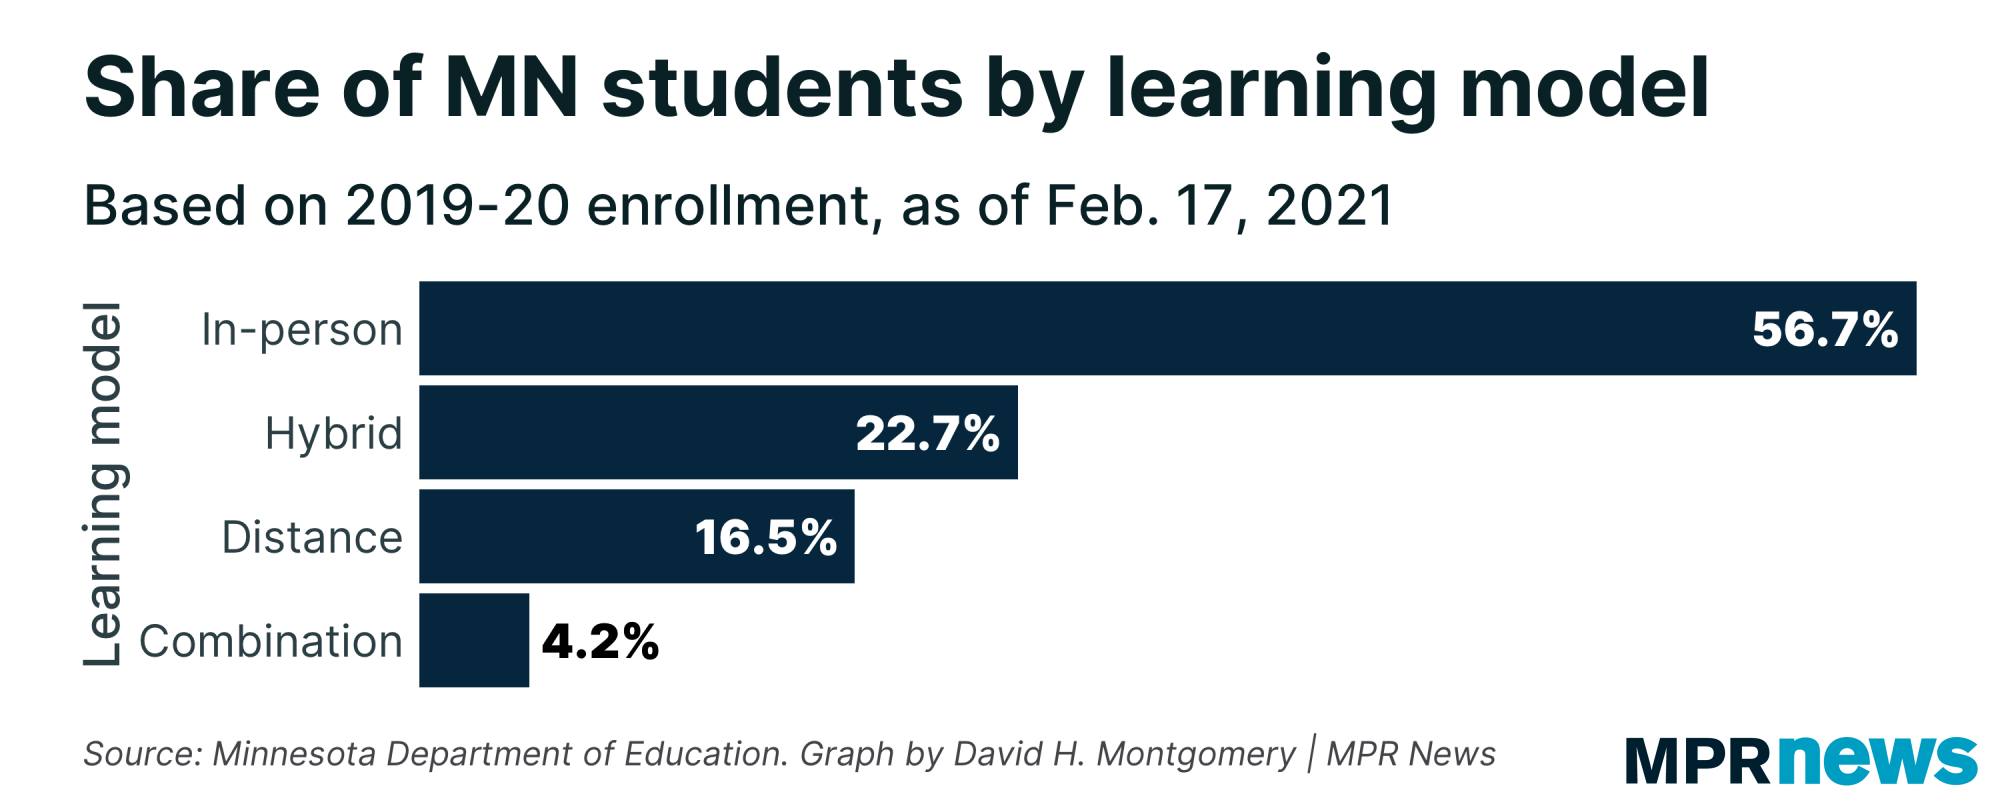 Share of Minnesota students by learning model